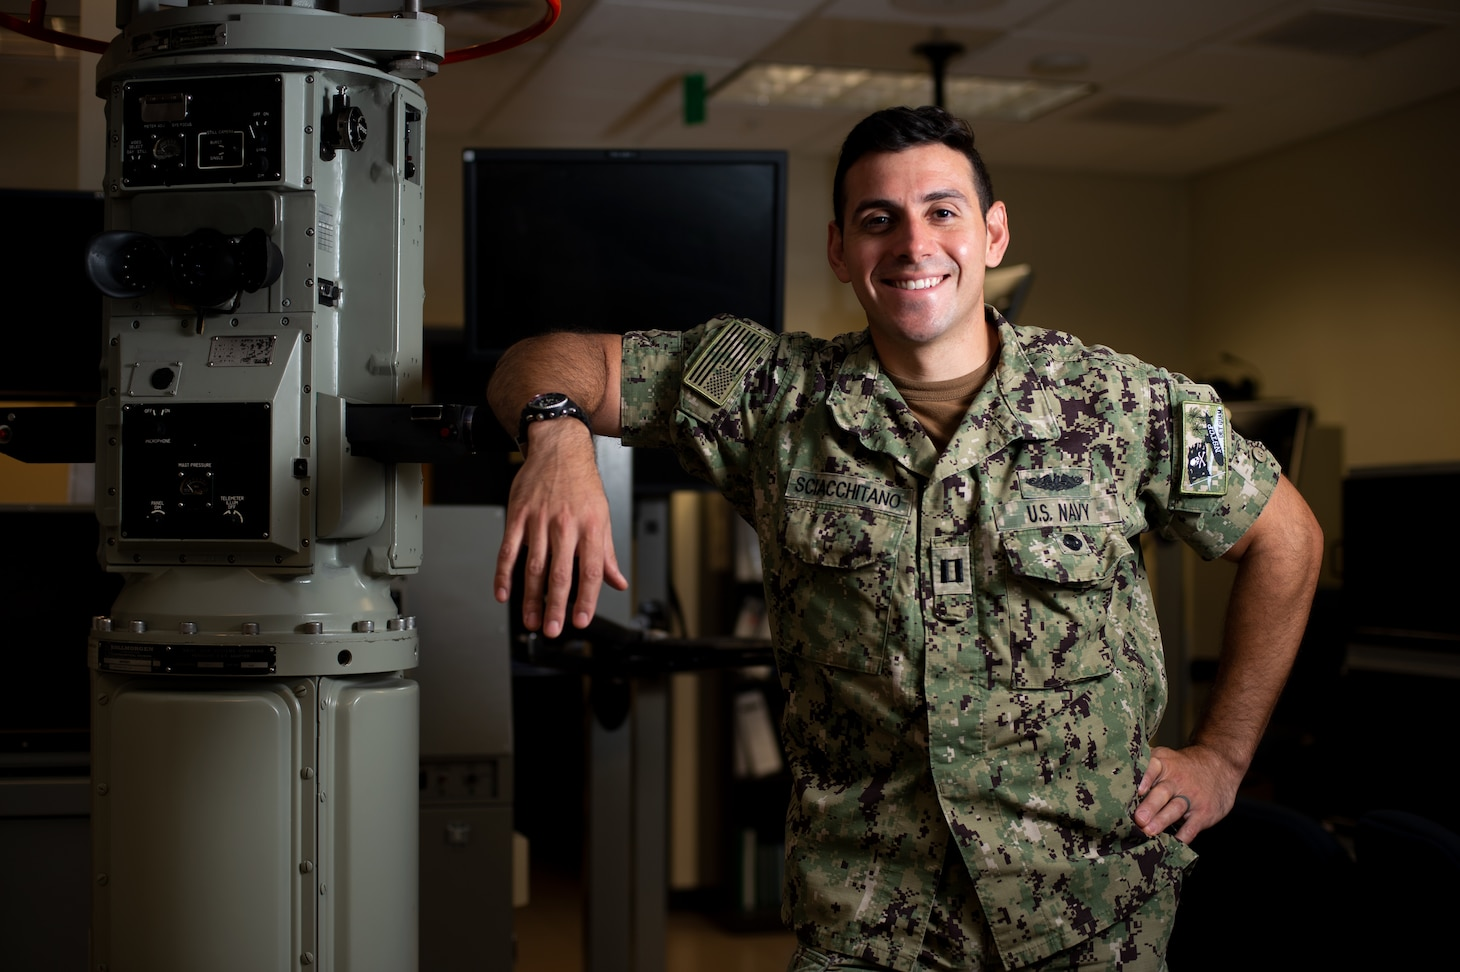 SANTA RITA, Guam (Feb. 17, 2021) Lt. Alfonso Sciacchitano, a native of Marietta, Georgia, assigned to Naval Submarine Training Center Pacific, Detachment Guam, poses for a portrait in the Submarine Multi-Mission Team Trainer at Konetzni Hall. Sciacchitano was announced as the 2020 Naval Education and Training Command Officer Instructor of the Year. (U.S. Navy photo by Mass Communication Specialist 2nd Class Kelsey J. Hockenberger)